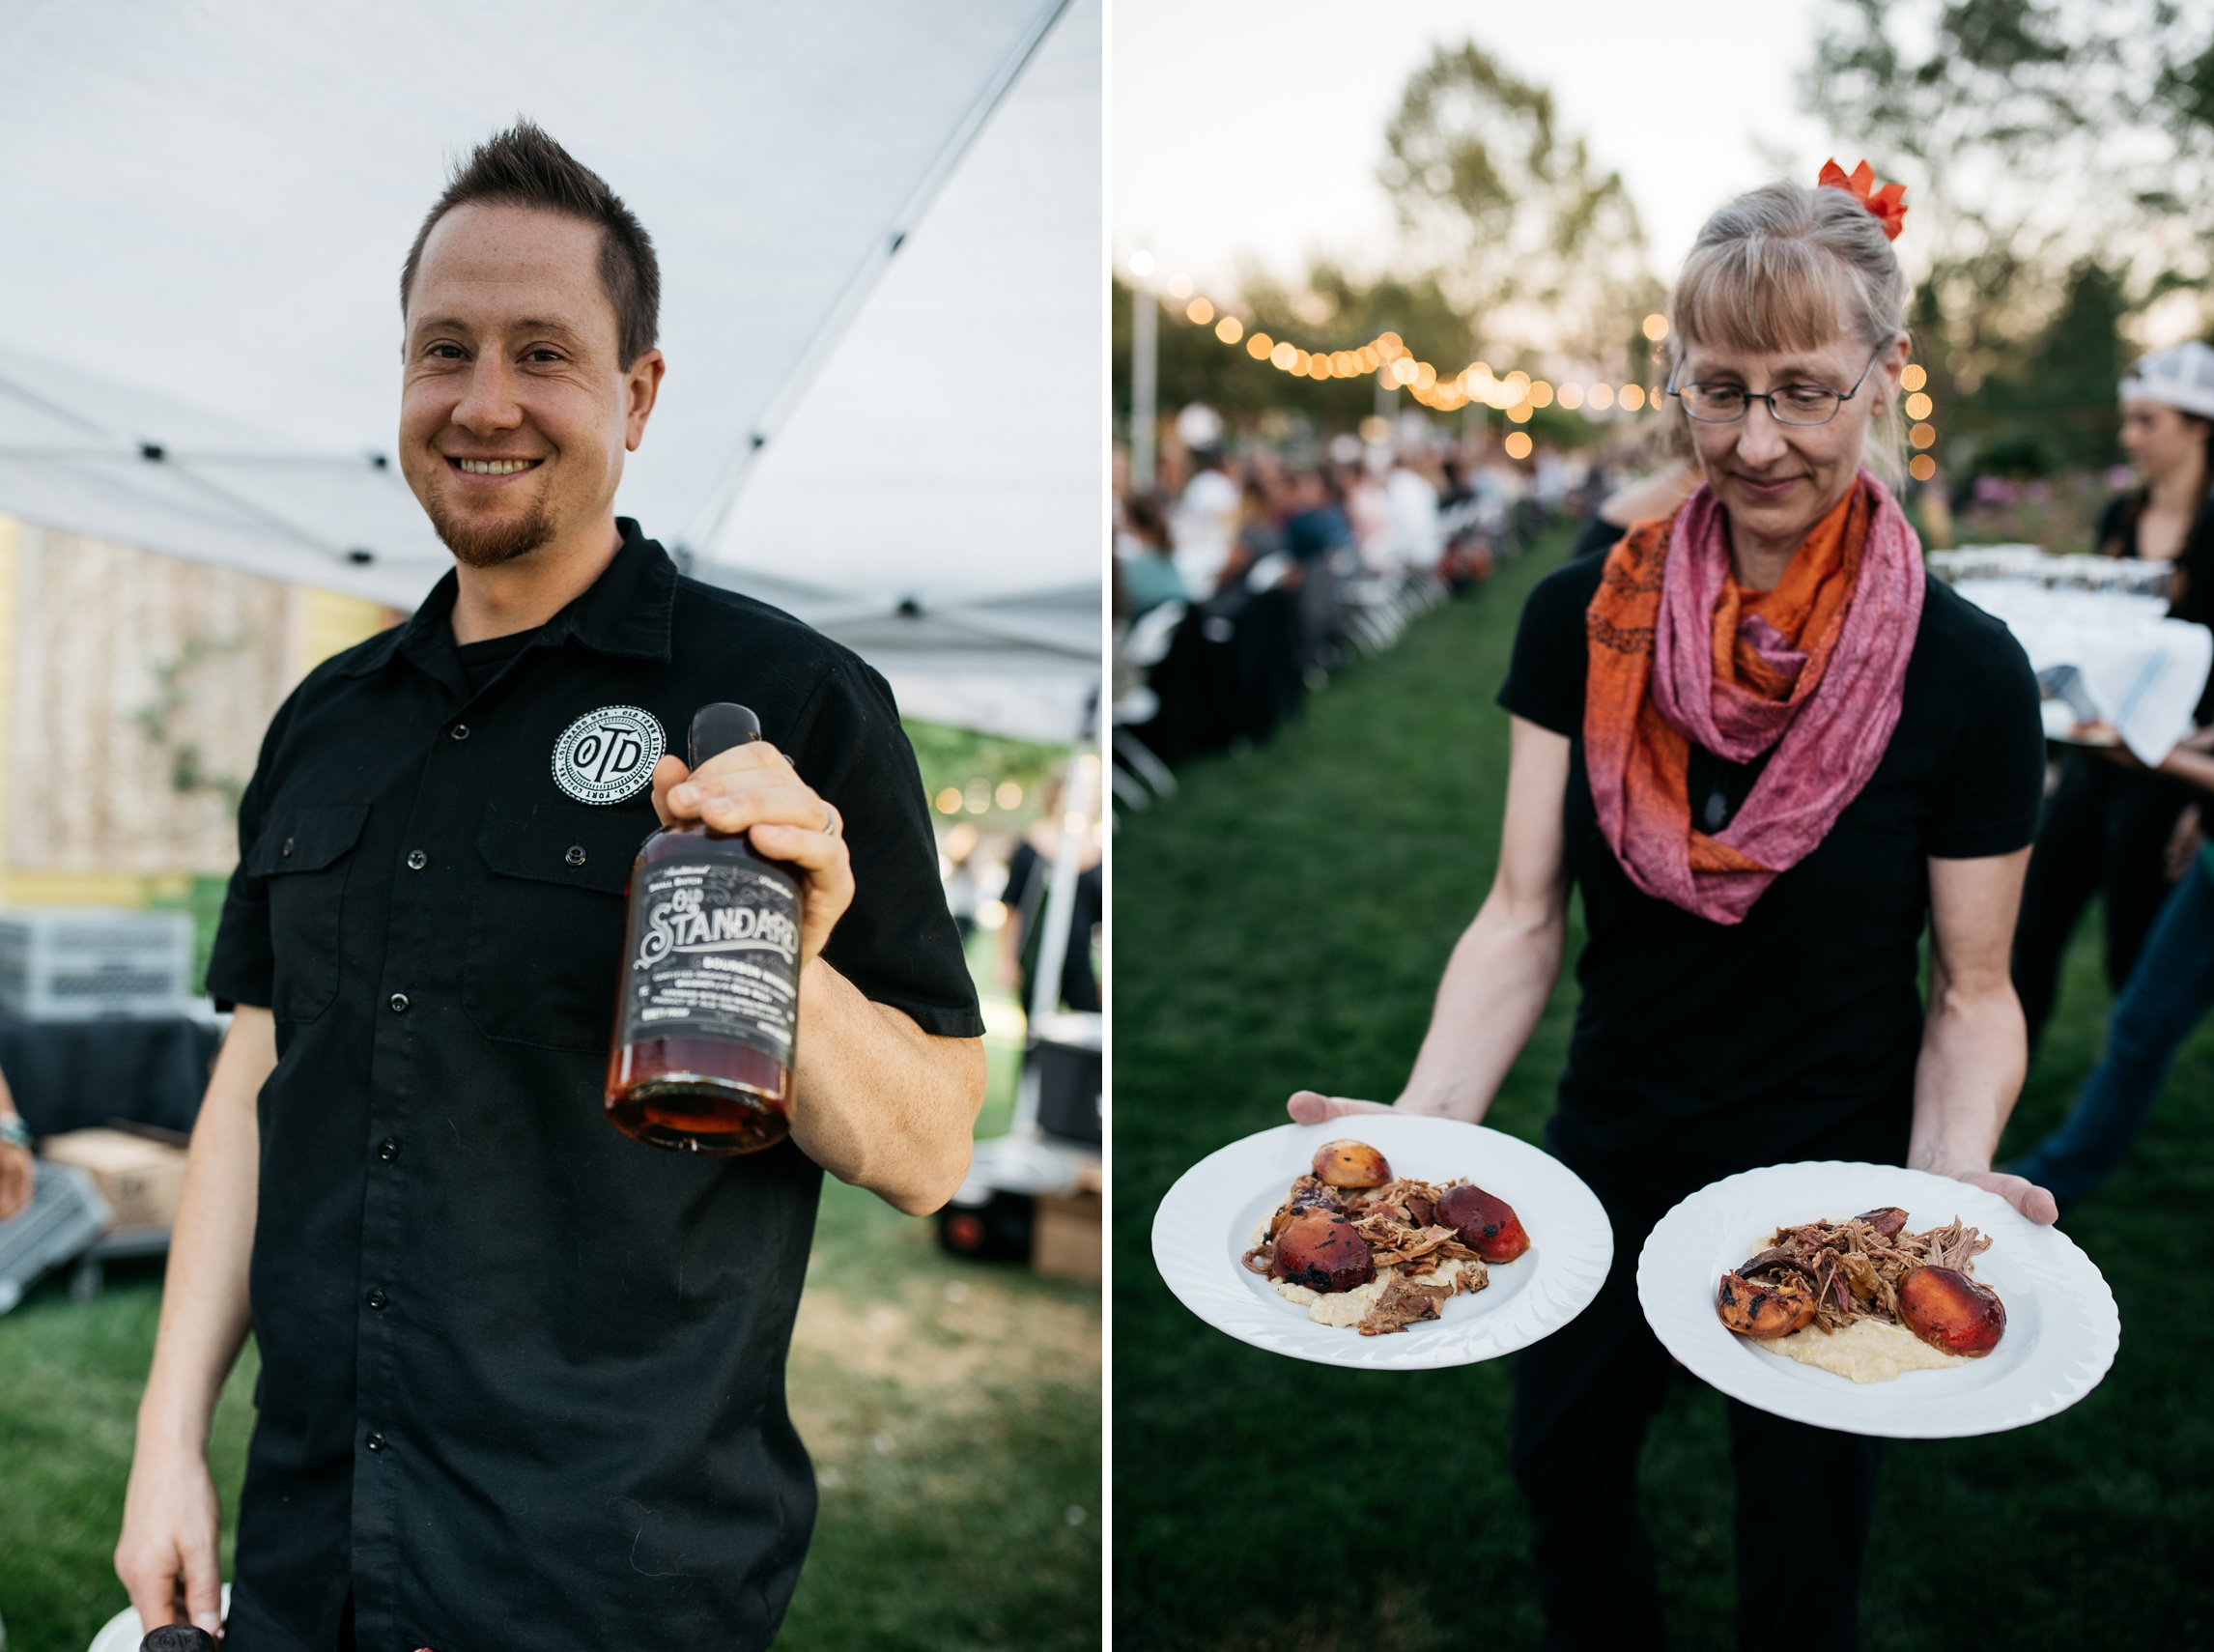 A happy vendor and server at the Fortified Collaborations Mishawaka 100 Year Harvest Dinner at Grant Farms CSA in Fort Collins, Colorado. Event photography by Sonja Salzburg of Sonja K Photography.